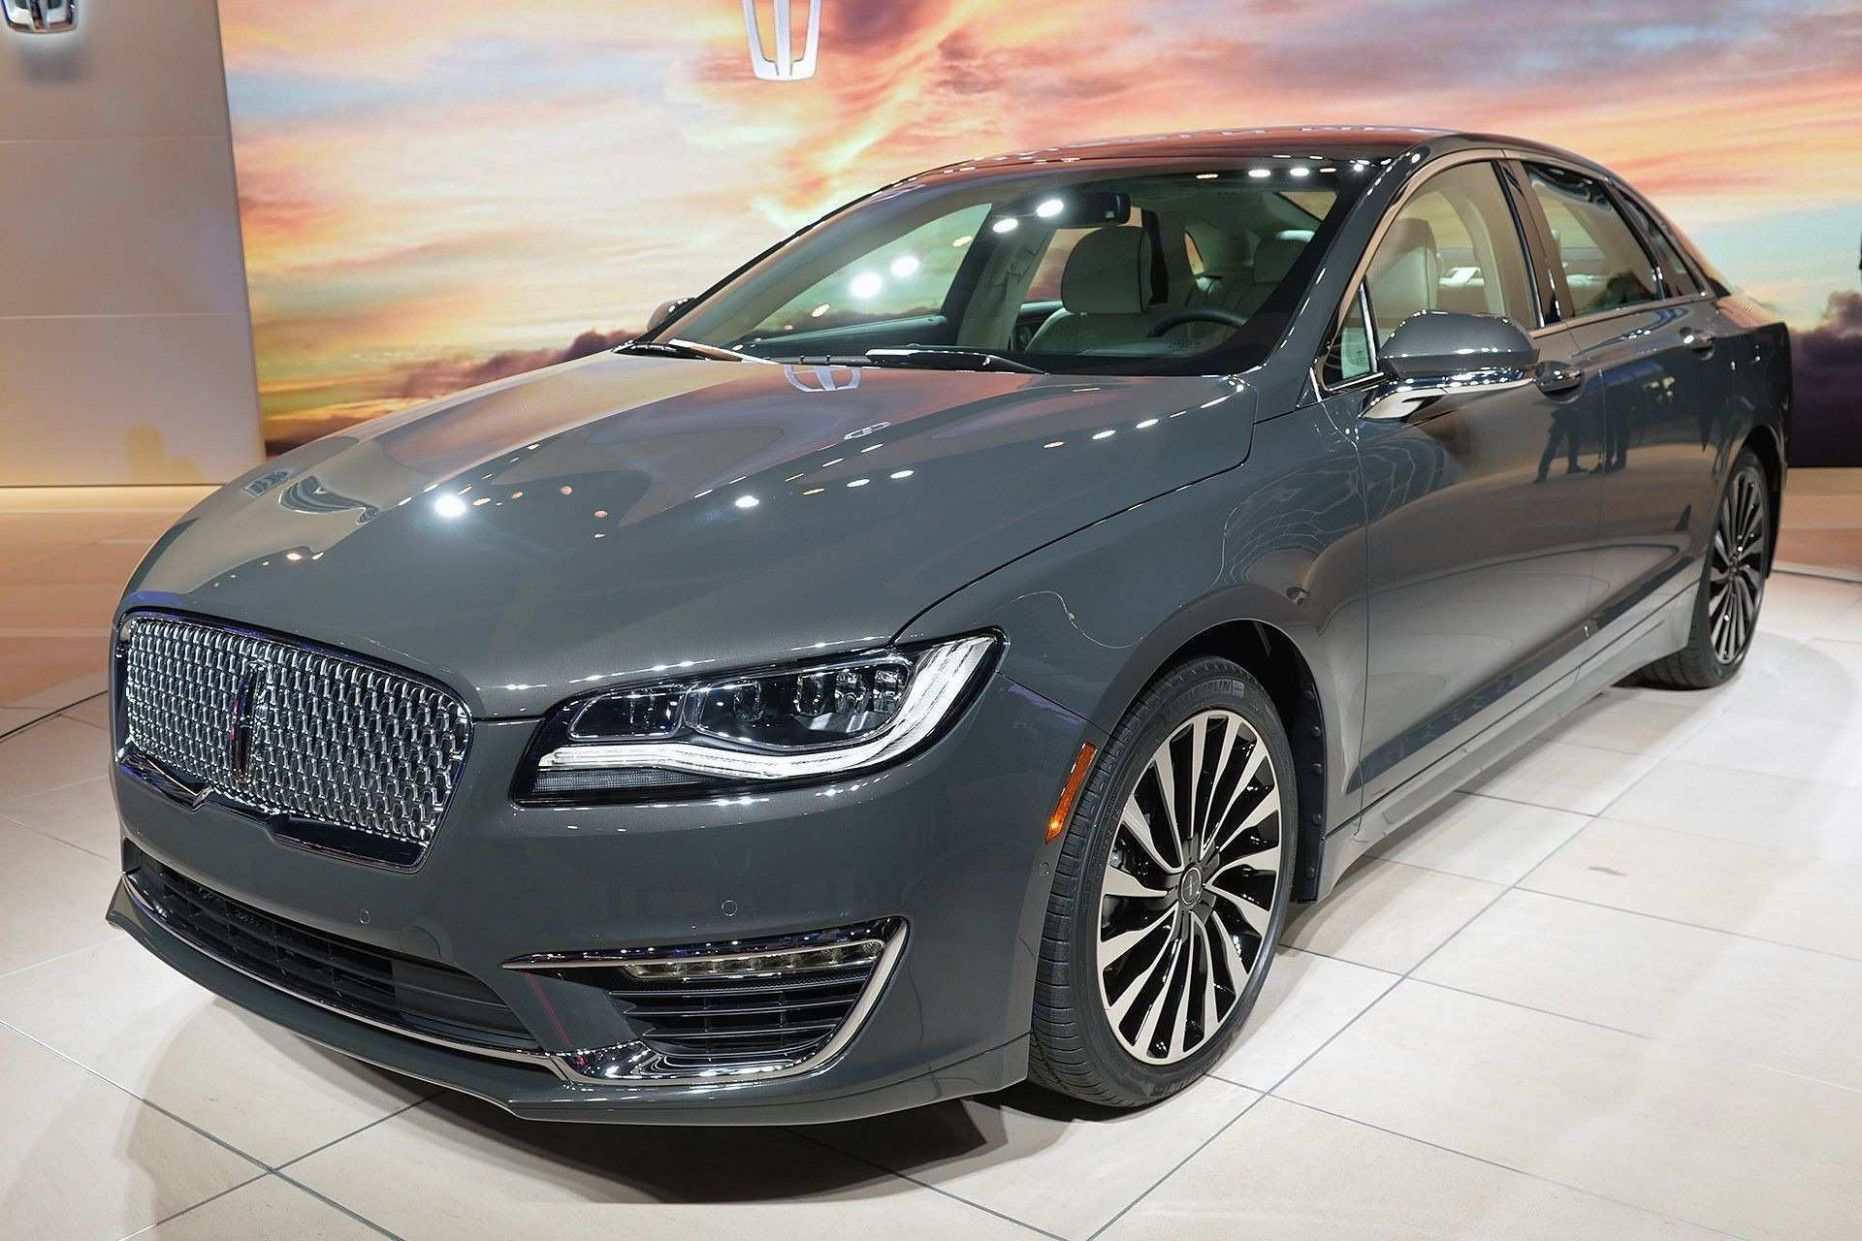 Spy Shots Lincoln Mkz Sedan Price And Review in 4  Lincoln mkz